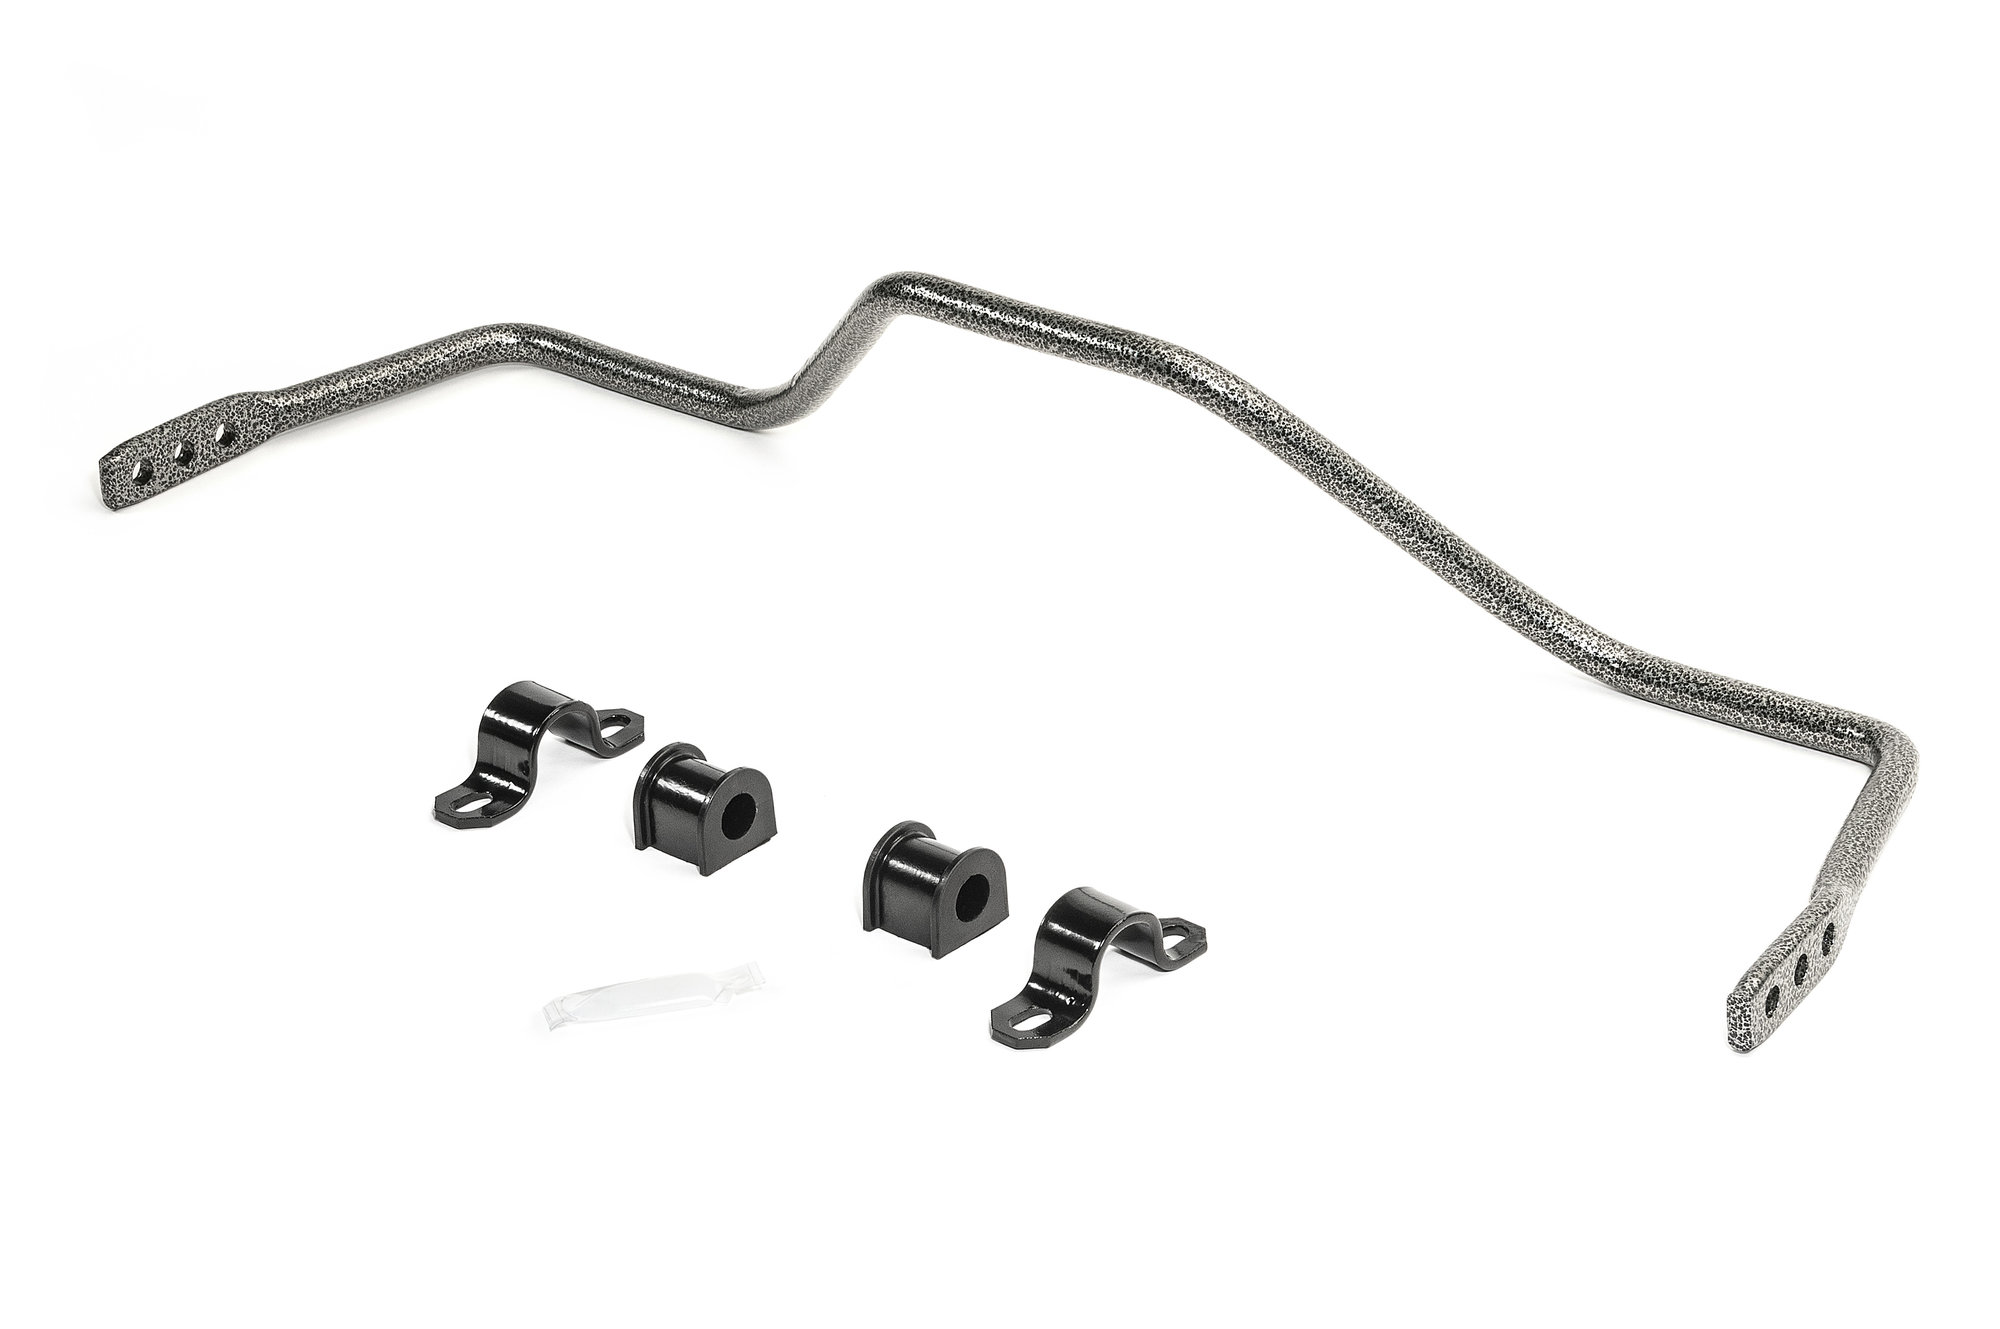 Hellwig Suspension 7684 Rear 3/4